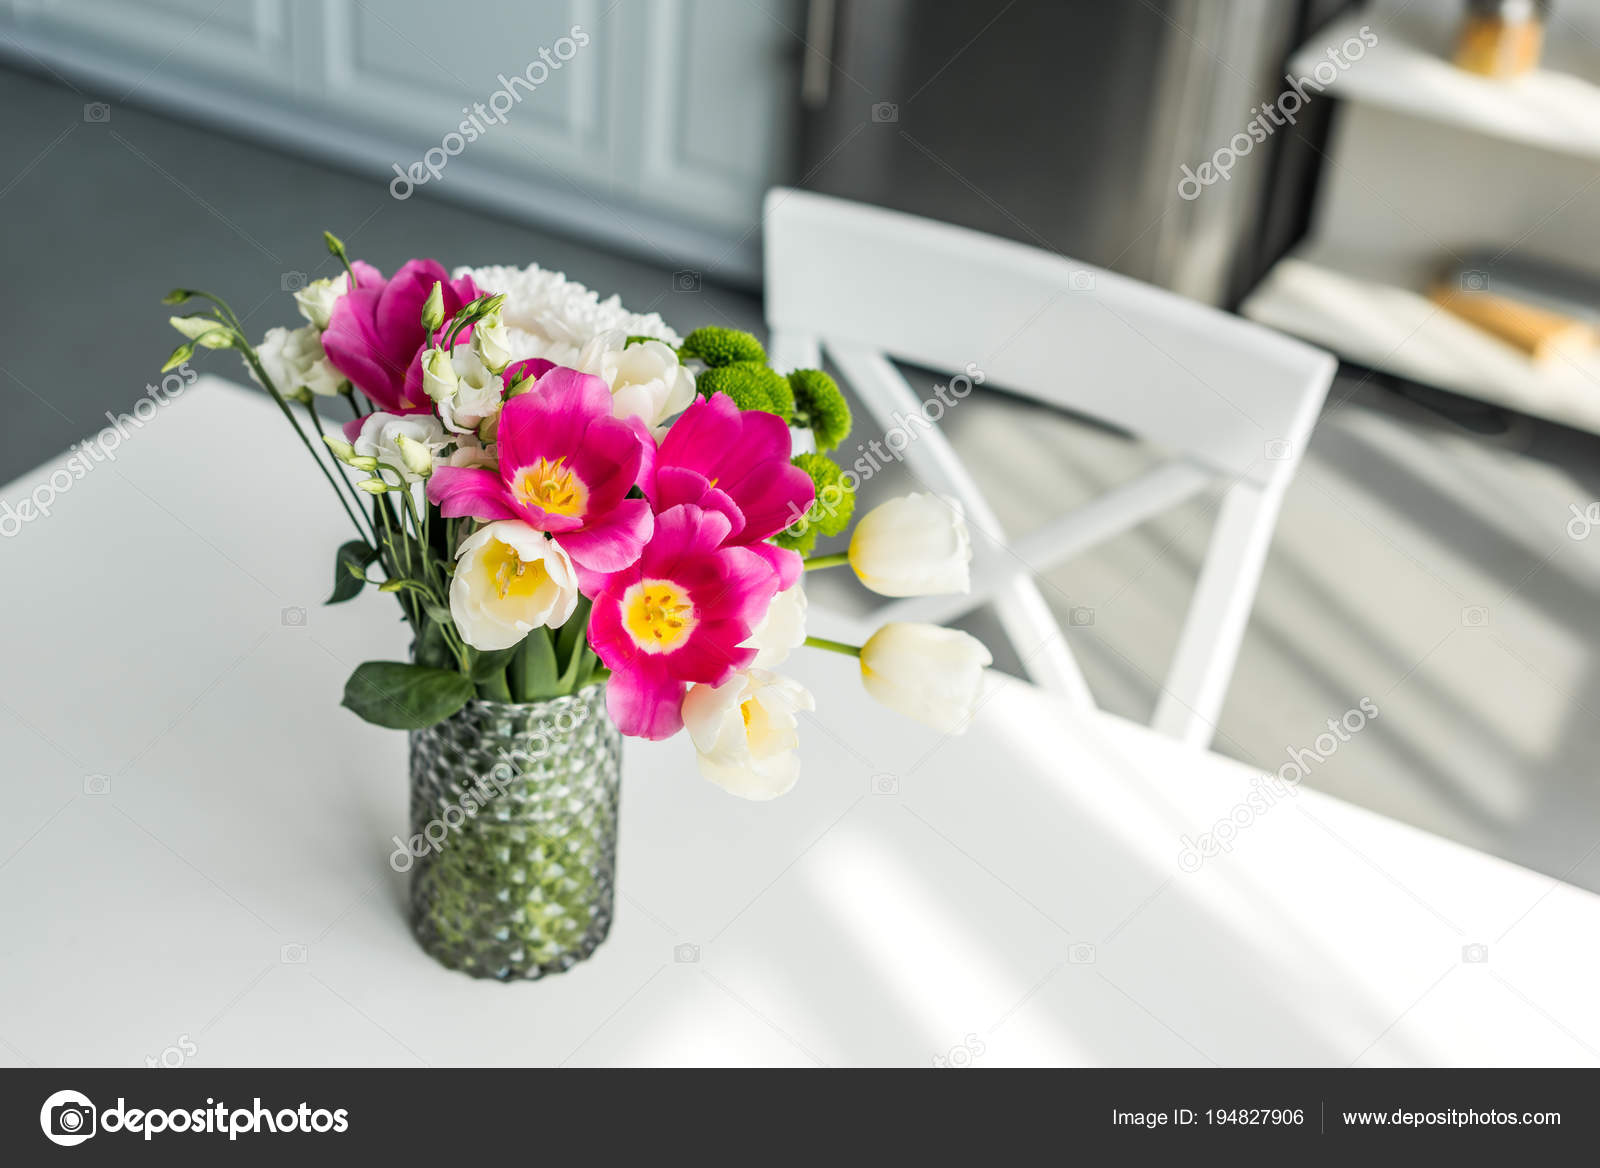 Bouquet beautiful colored flowers white table kitchen stock photo bouquet beautiful colored flowers white table kitchen stock photo mightylinksfo